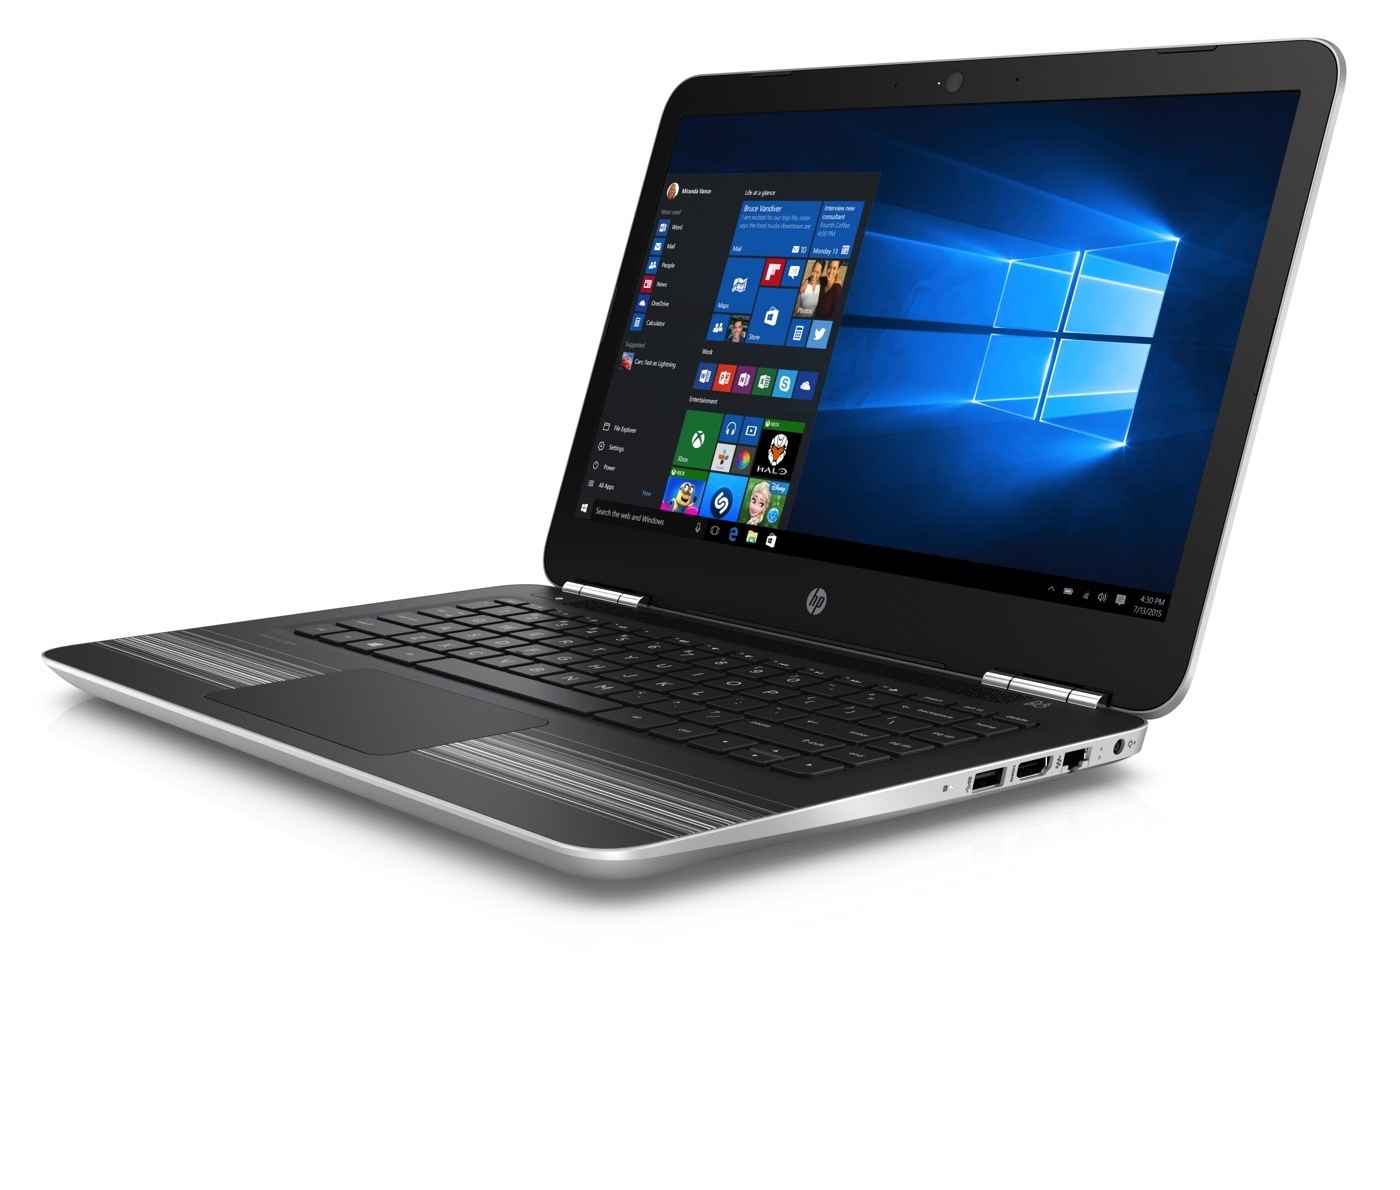 hp debuts new pavilion pc lineup including a 15 inch hybrid laptop from the x360 range tablet. Black Bedroom Furniture Sets. Home Design Ideas